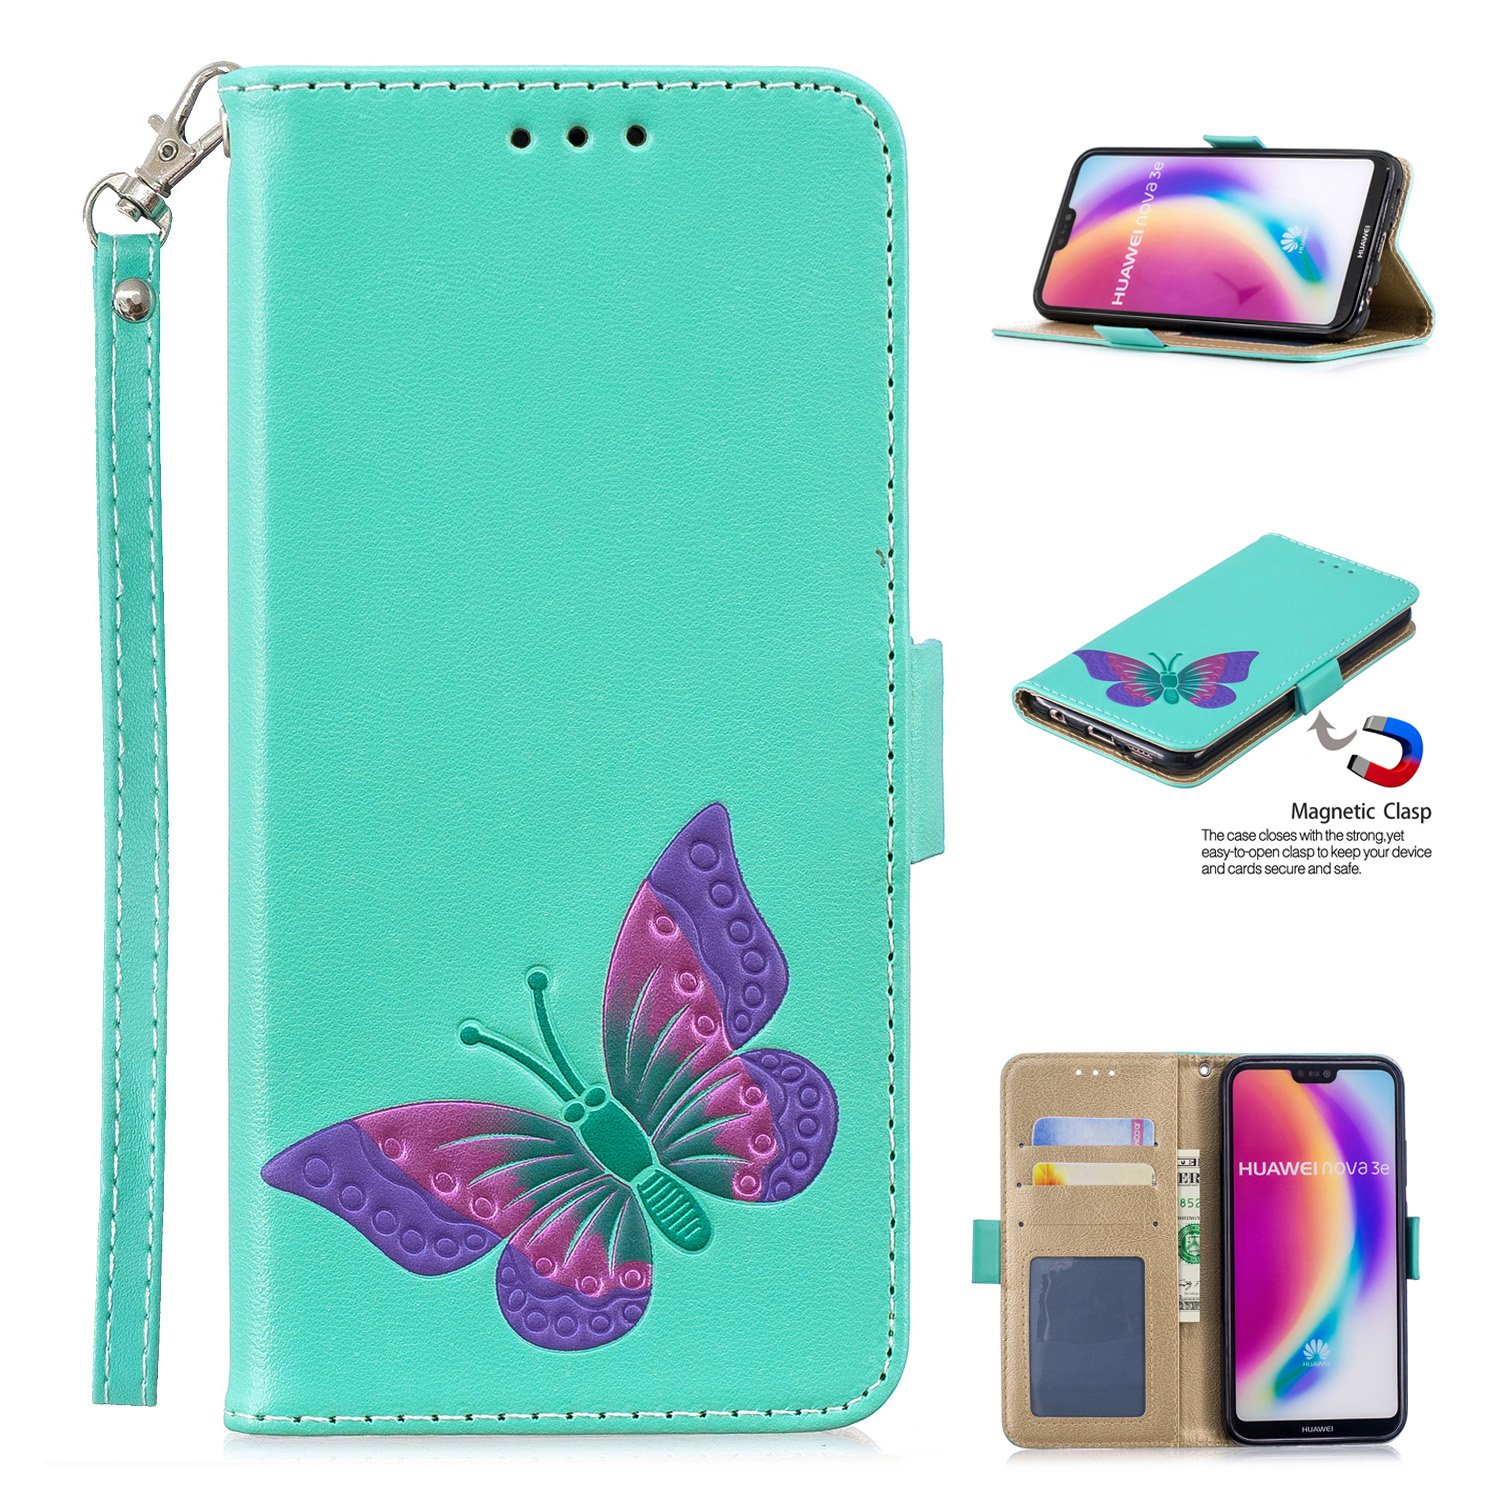 DAMONDY Huawei P20 Lite Case, 3D Cute Butterfly Pattern Stand Wallet Purse Card ID Holders Design Flip Cover TPU Soft Bumper PU Leather Magnetic for Huawei P20 Lite-brown